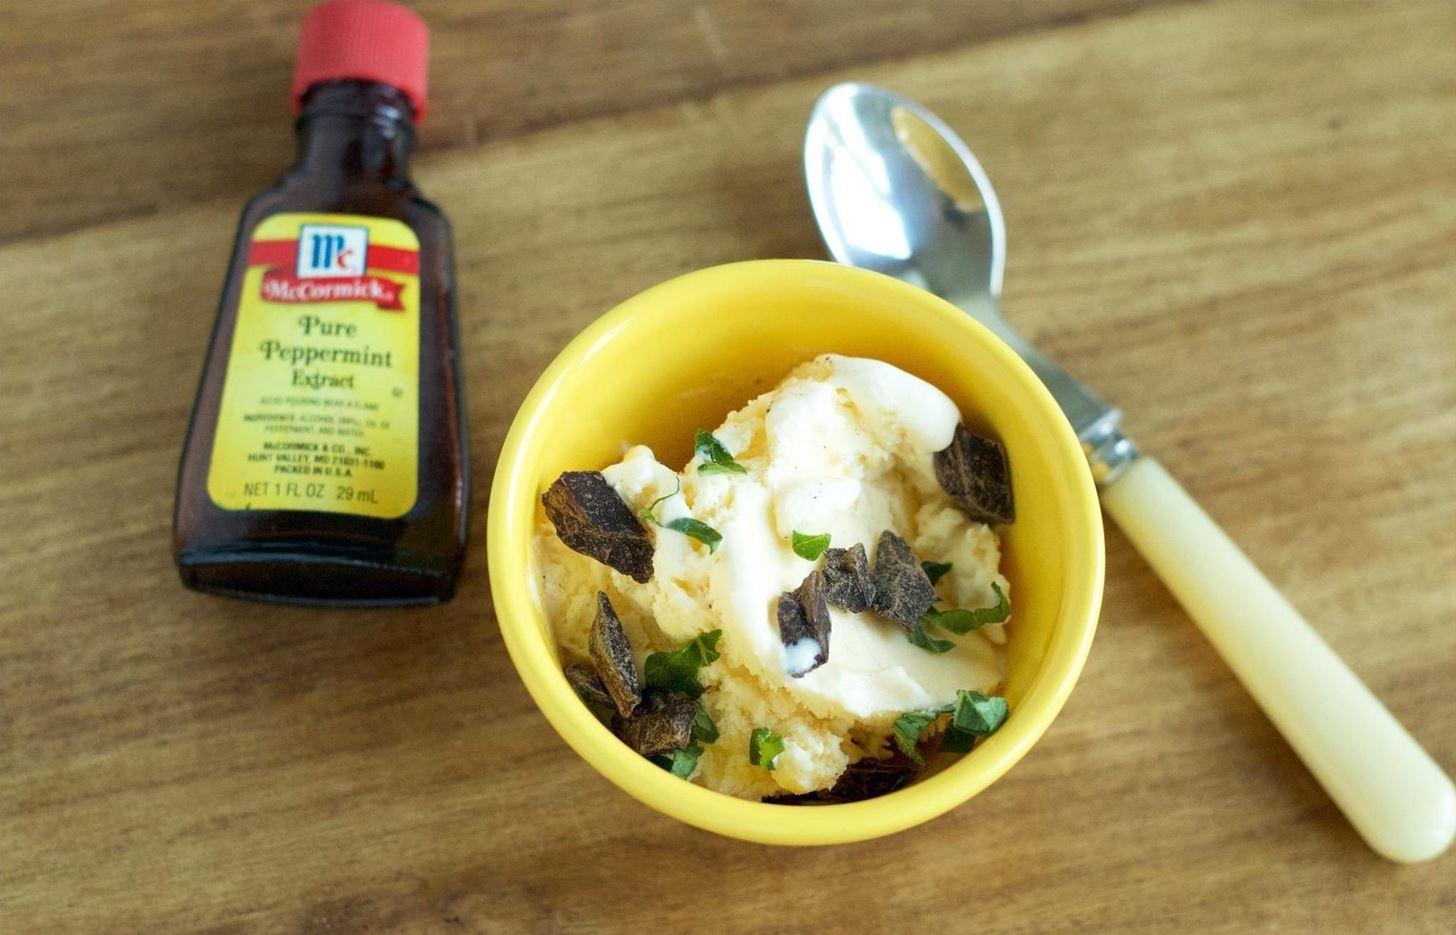 Creative 3-Ingredient Add-Ins That Make Vanilla Ice Cream to Die For